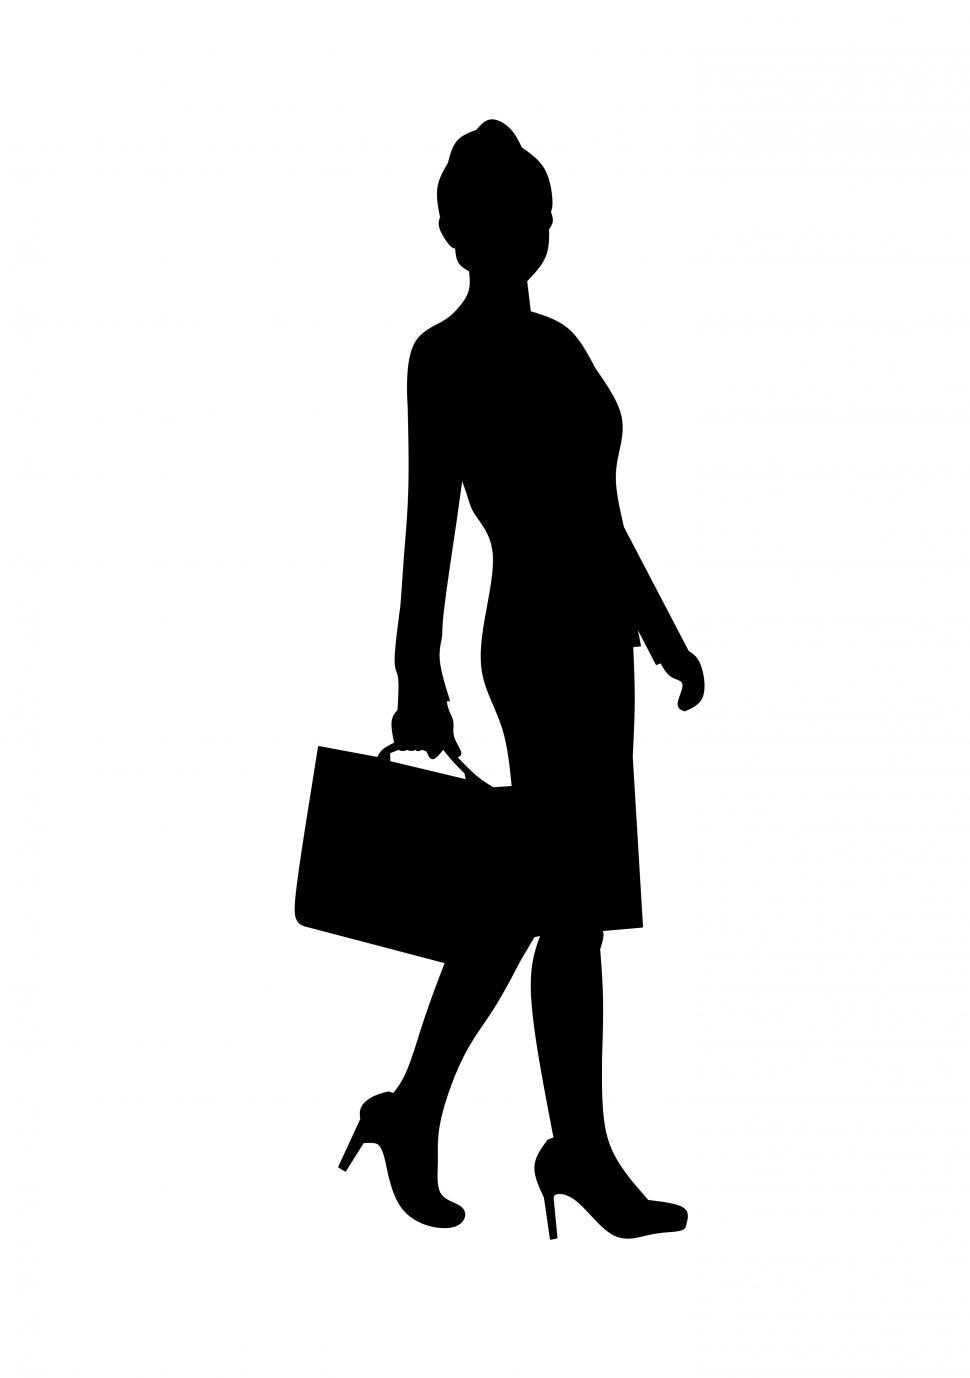 Download Free Stock Photo of Walking businesswoman silhouette